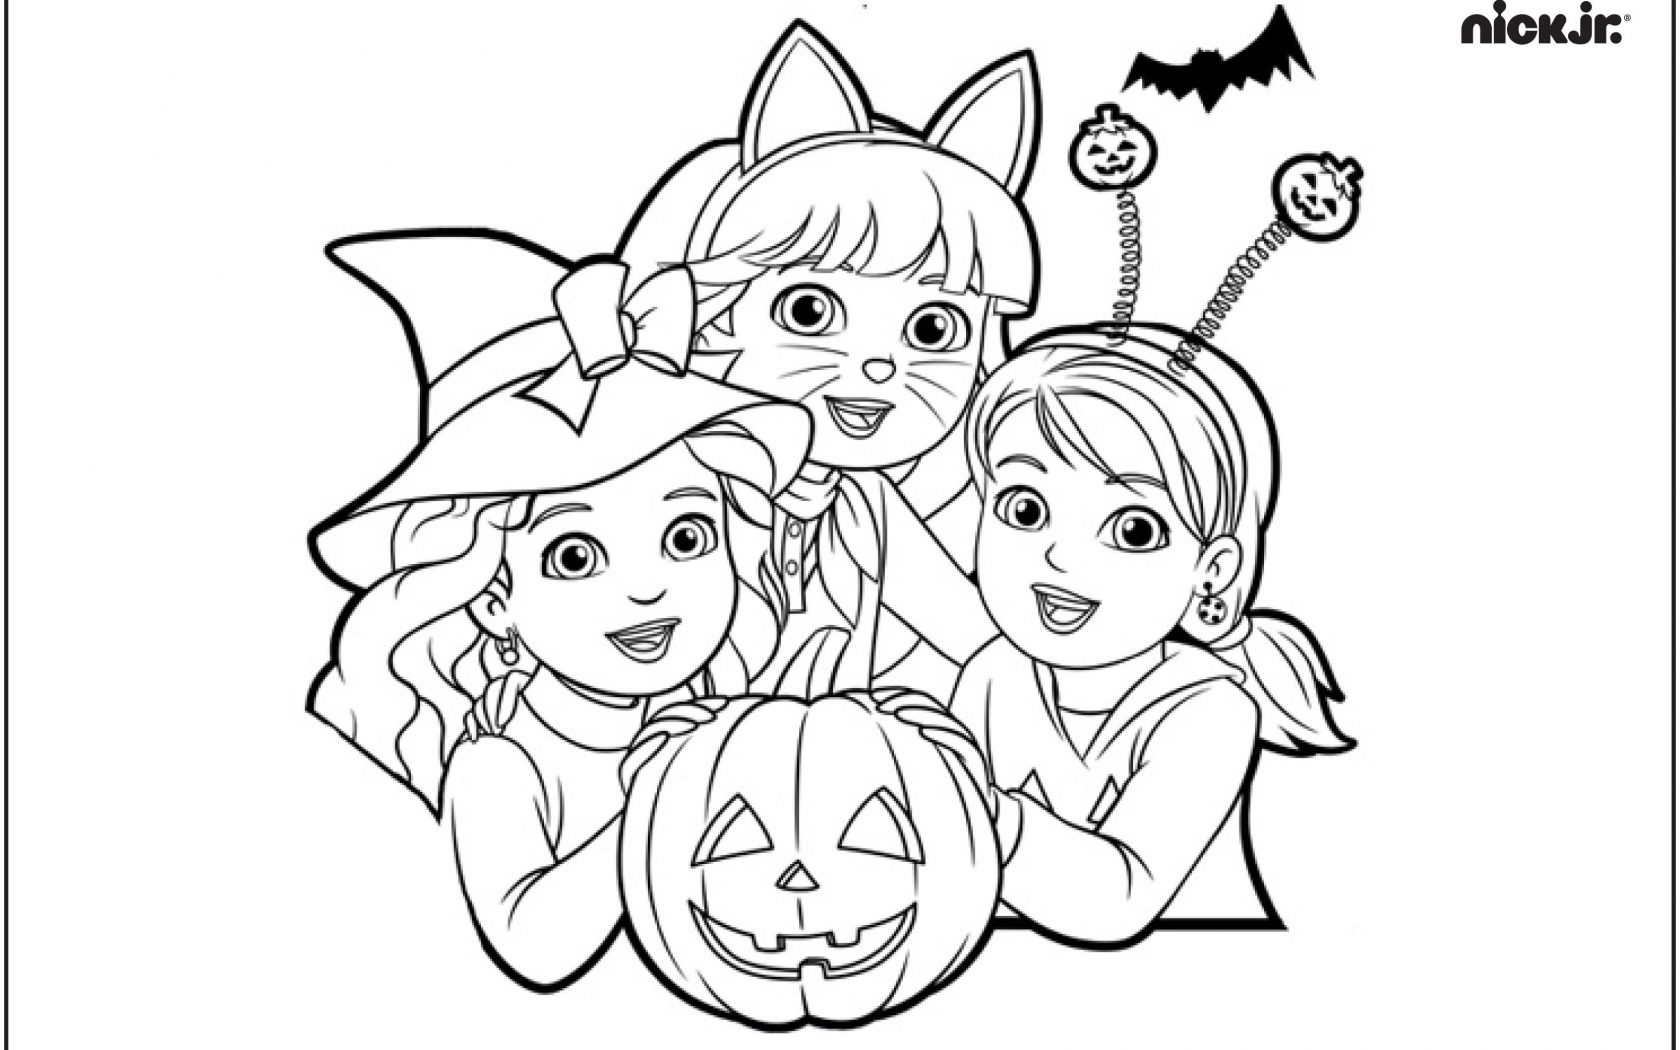 nickelodeon coloring pages to print - photo#27